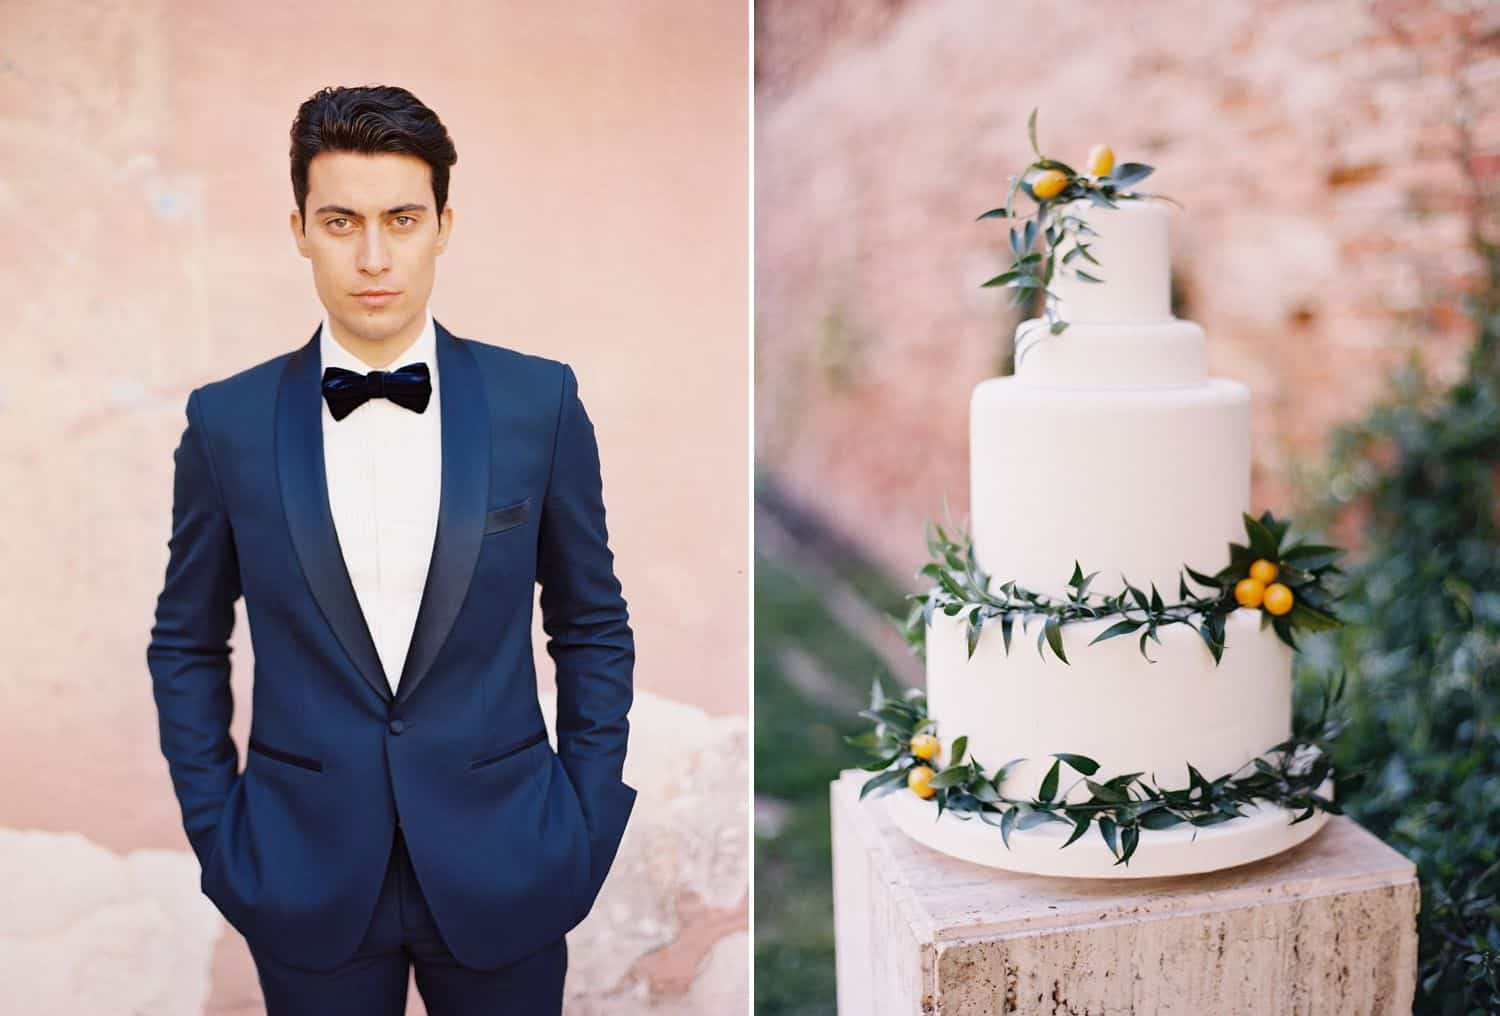 A groom in a blue tuxedo and black bow tie stands next to a tiered wedding cake, all in front of a pink wall.